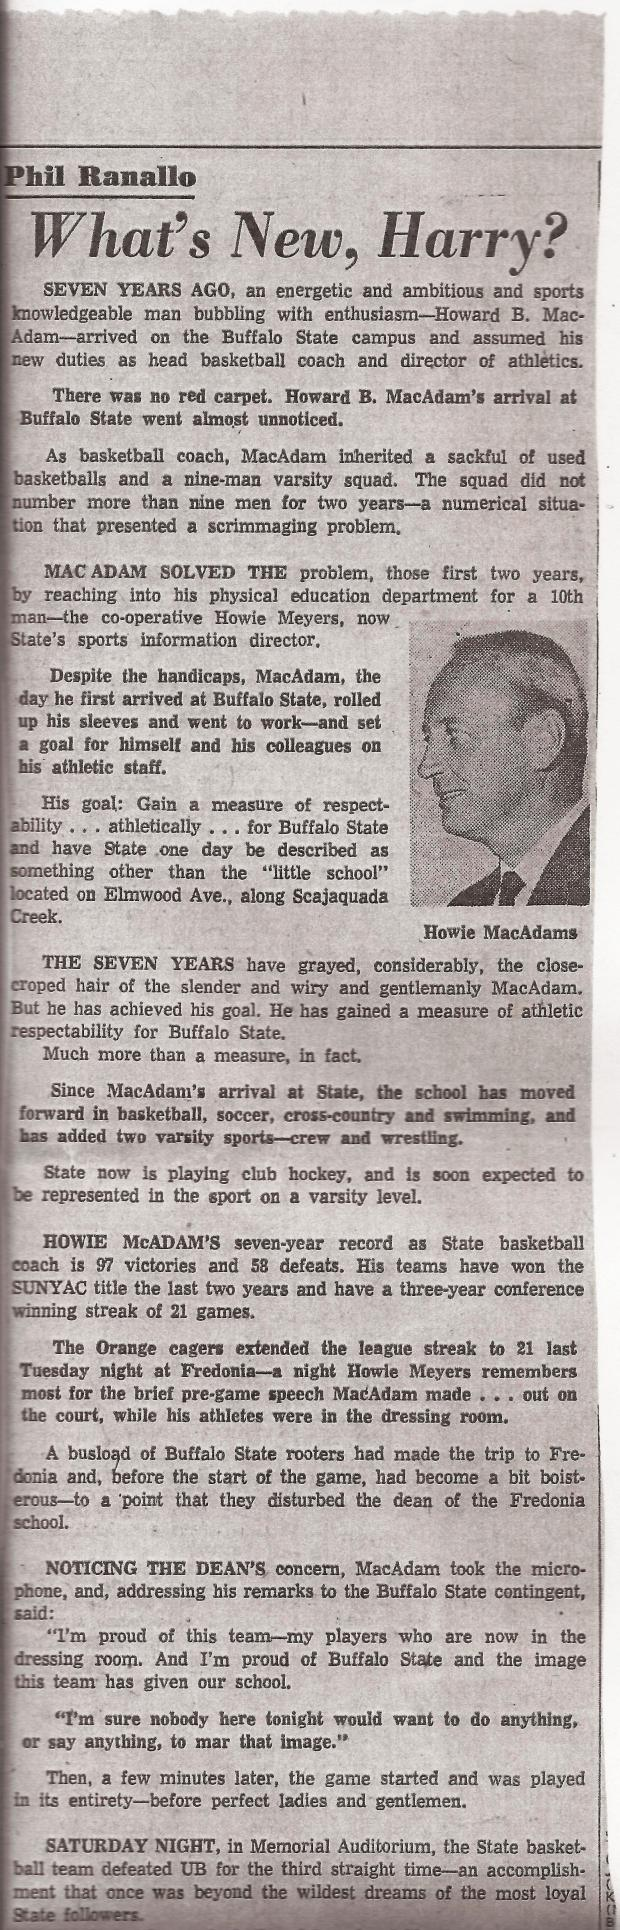 HOWIE MACADAMS BUFF STATE BASKETBALL SCAN A